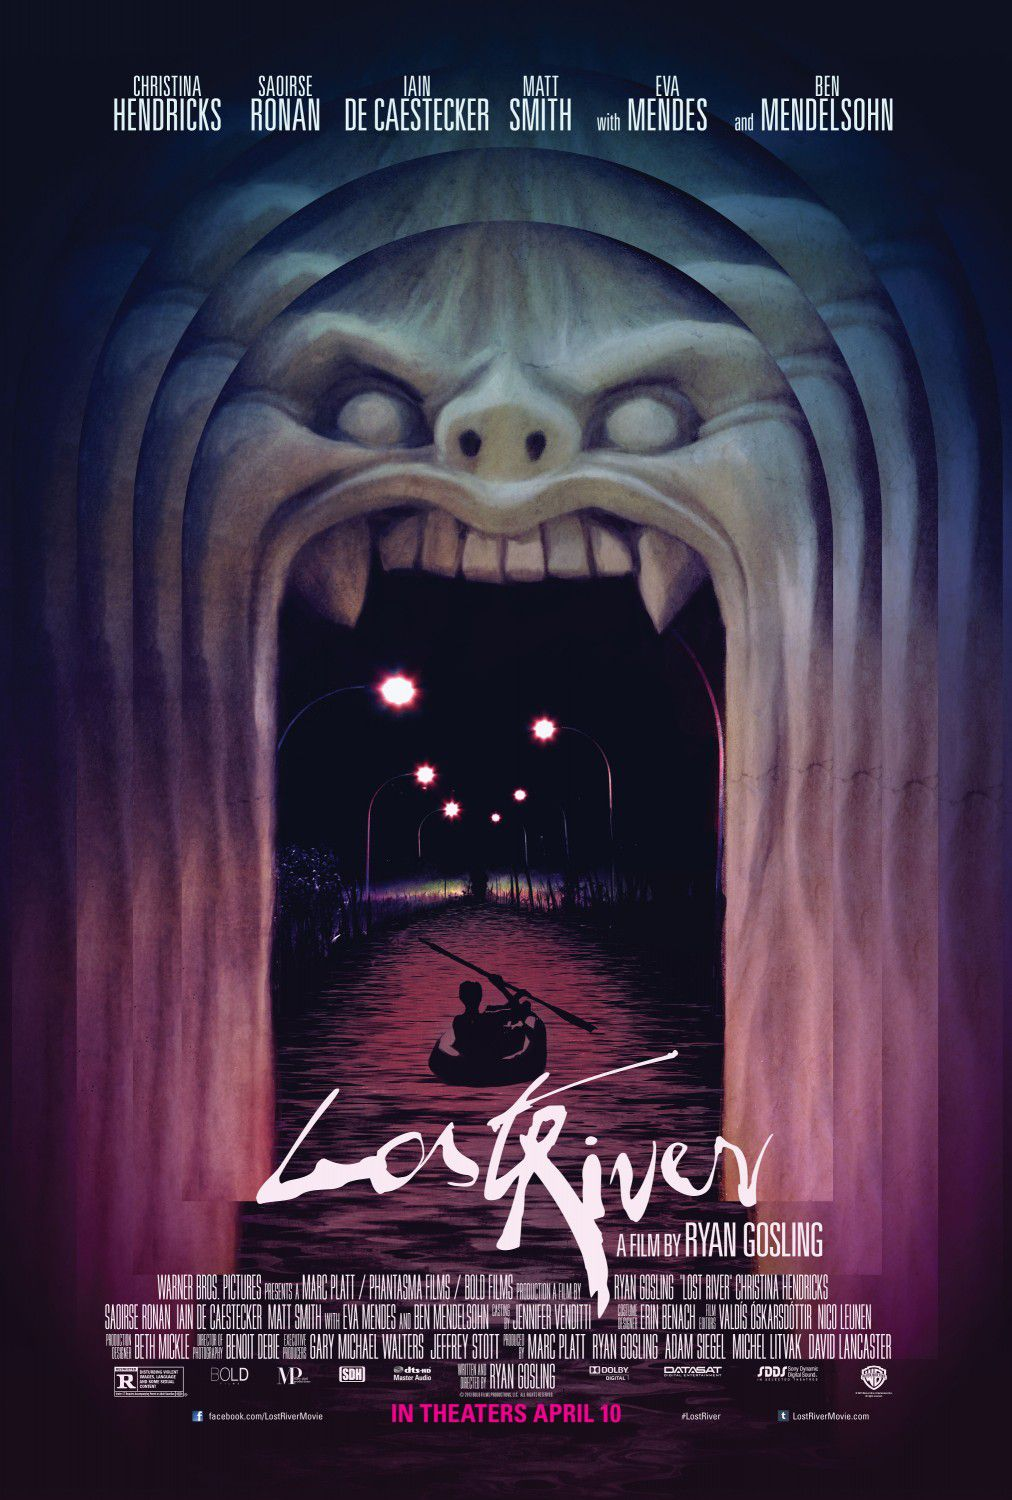 Film by Ryan Gosling - Lost river - Christina Hendricks - Saoirse Ronan - Ian De Caestecker - Matt Smith - Eva Mendes - Ben Mendelsohn - poster